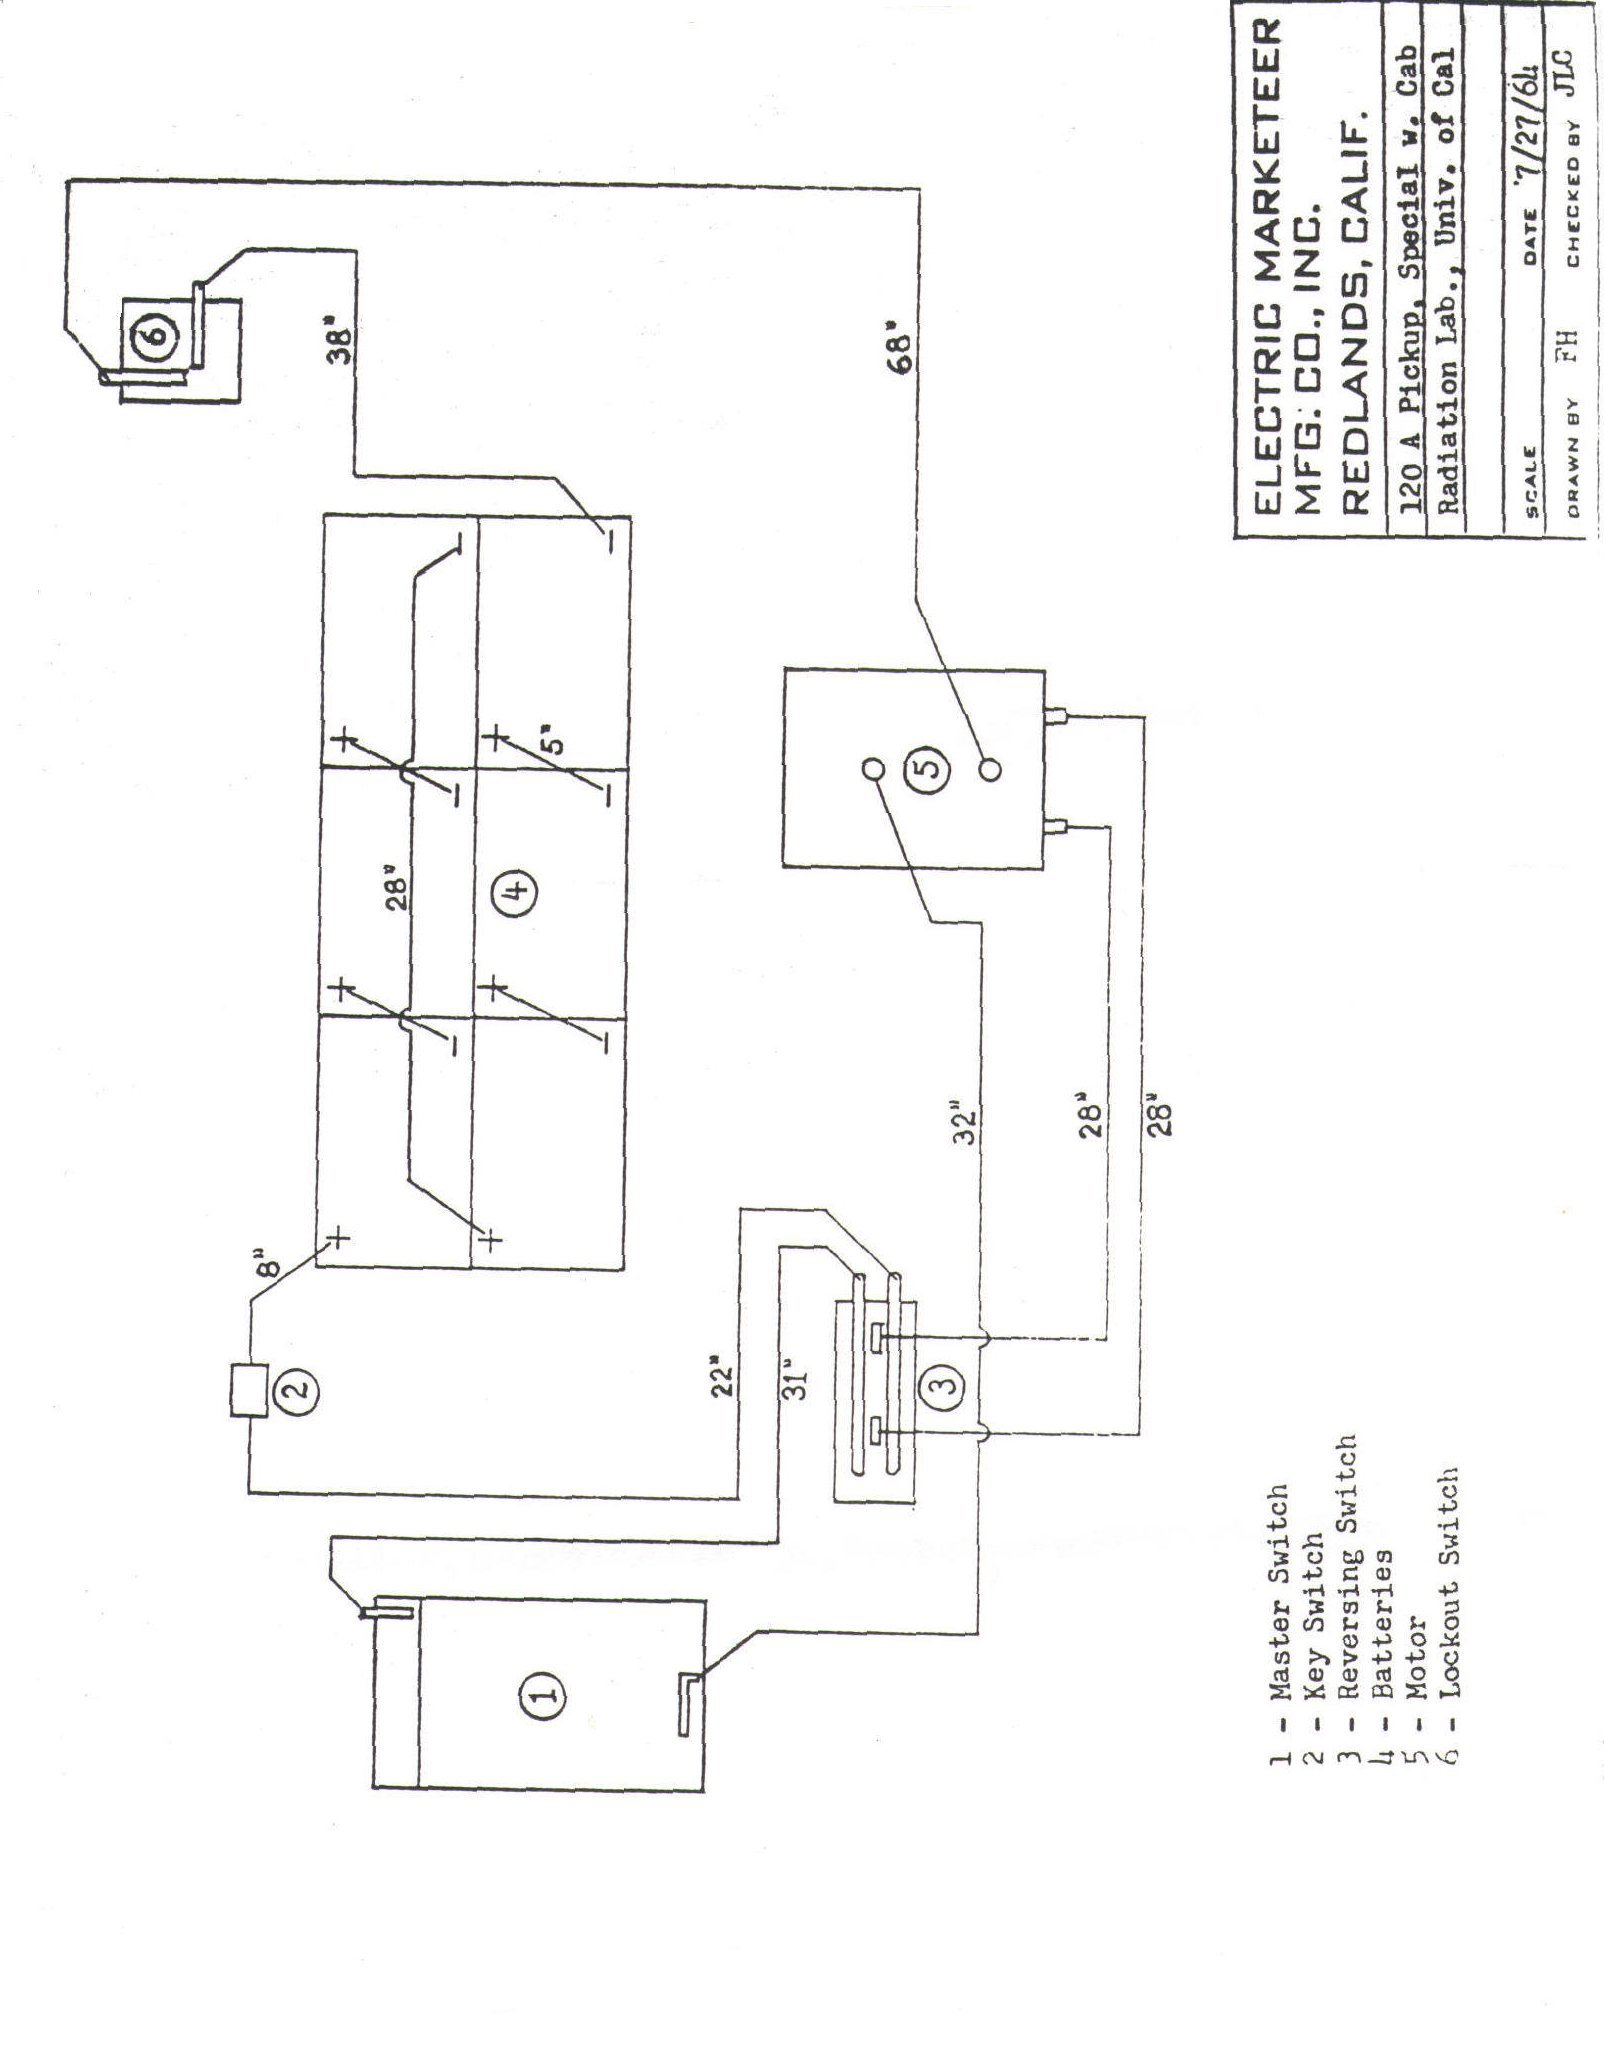 small resolution of golf cart wiring diagram westinghouse 529 agricultural and westinghouse golf cart wiring diagram